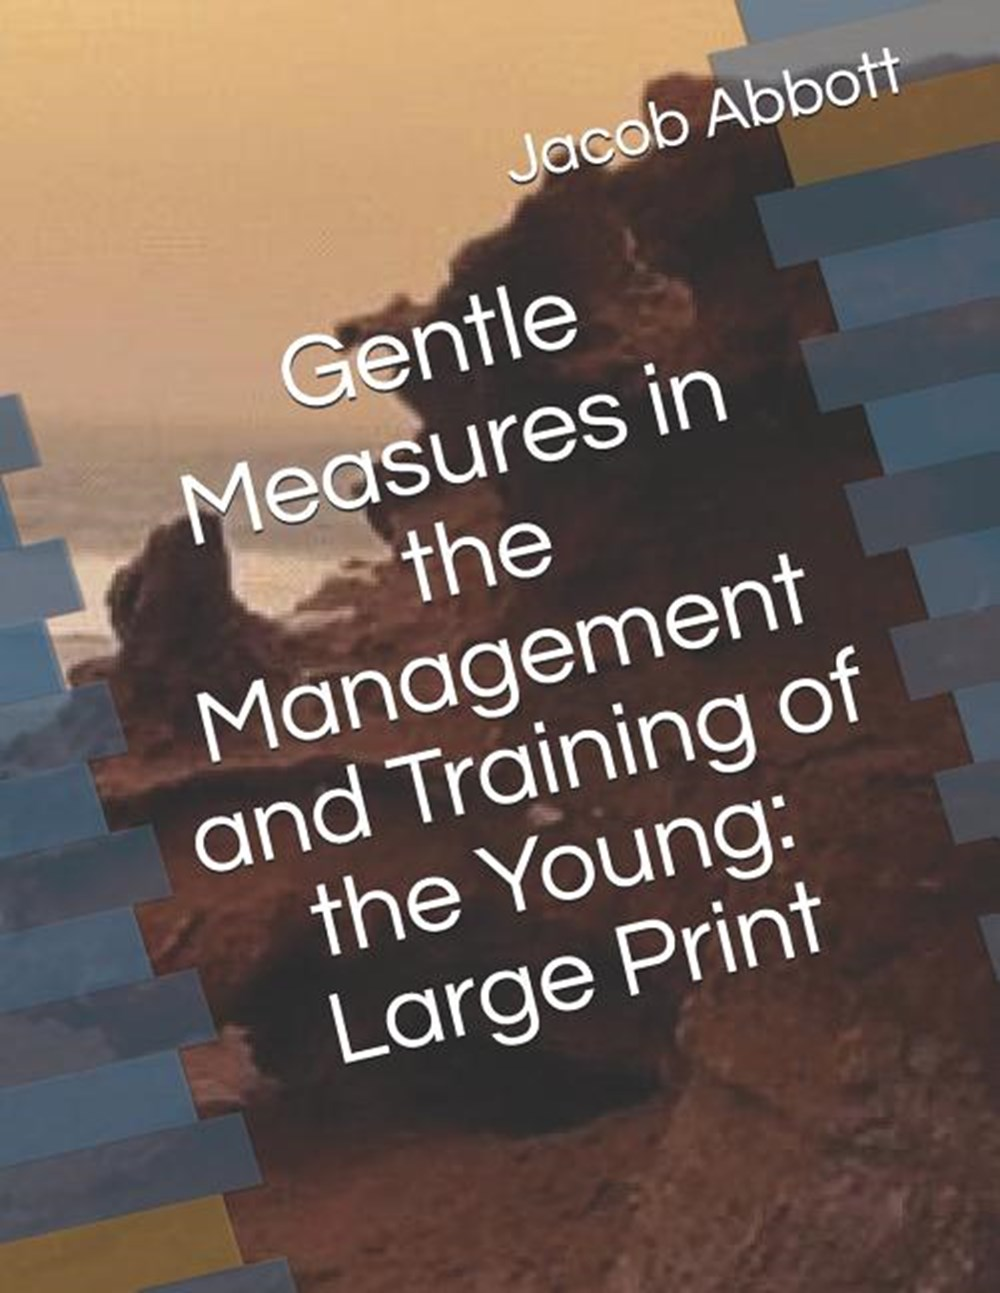 Gentle Measures in the Management and Training of the Young Large Print